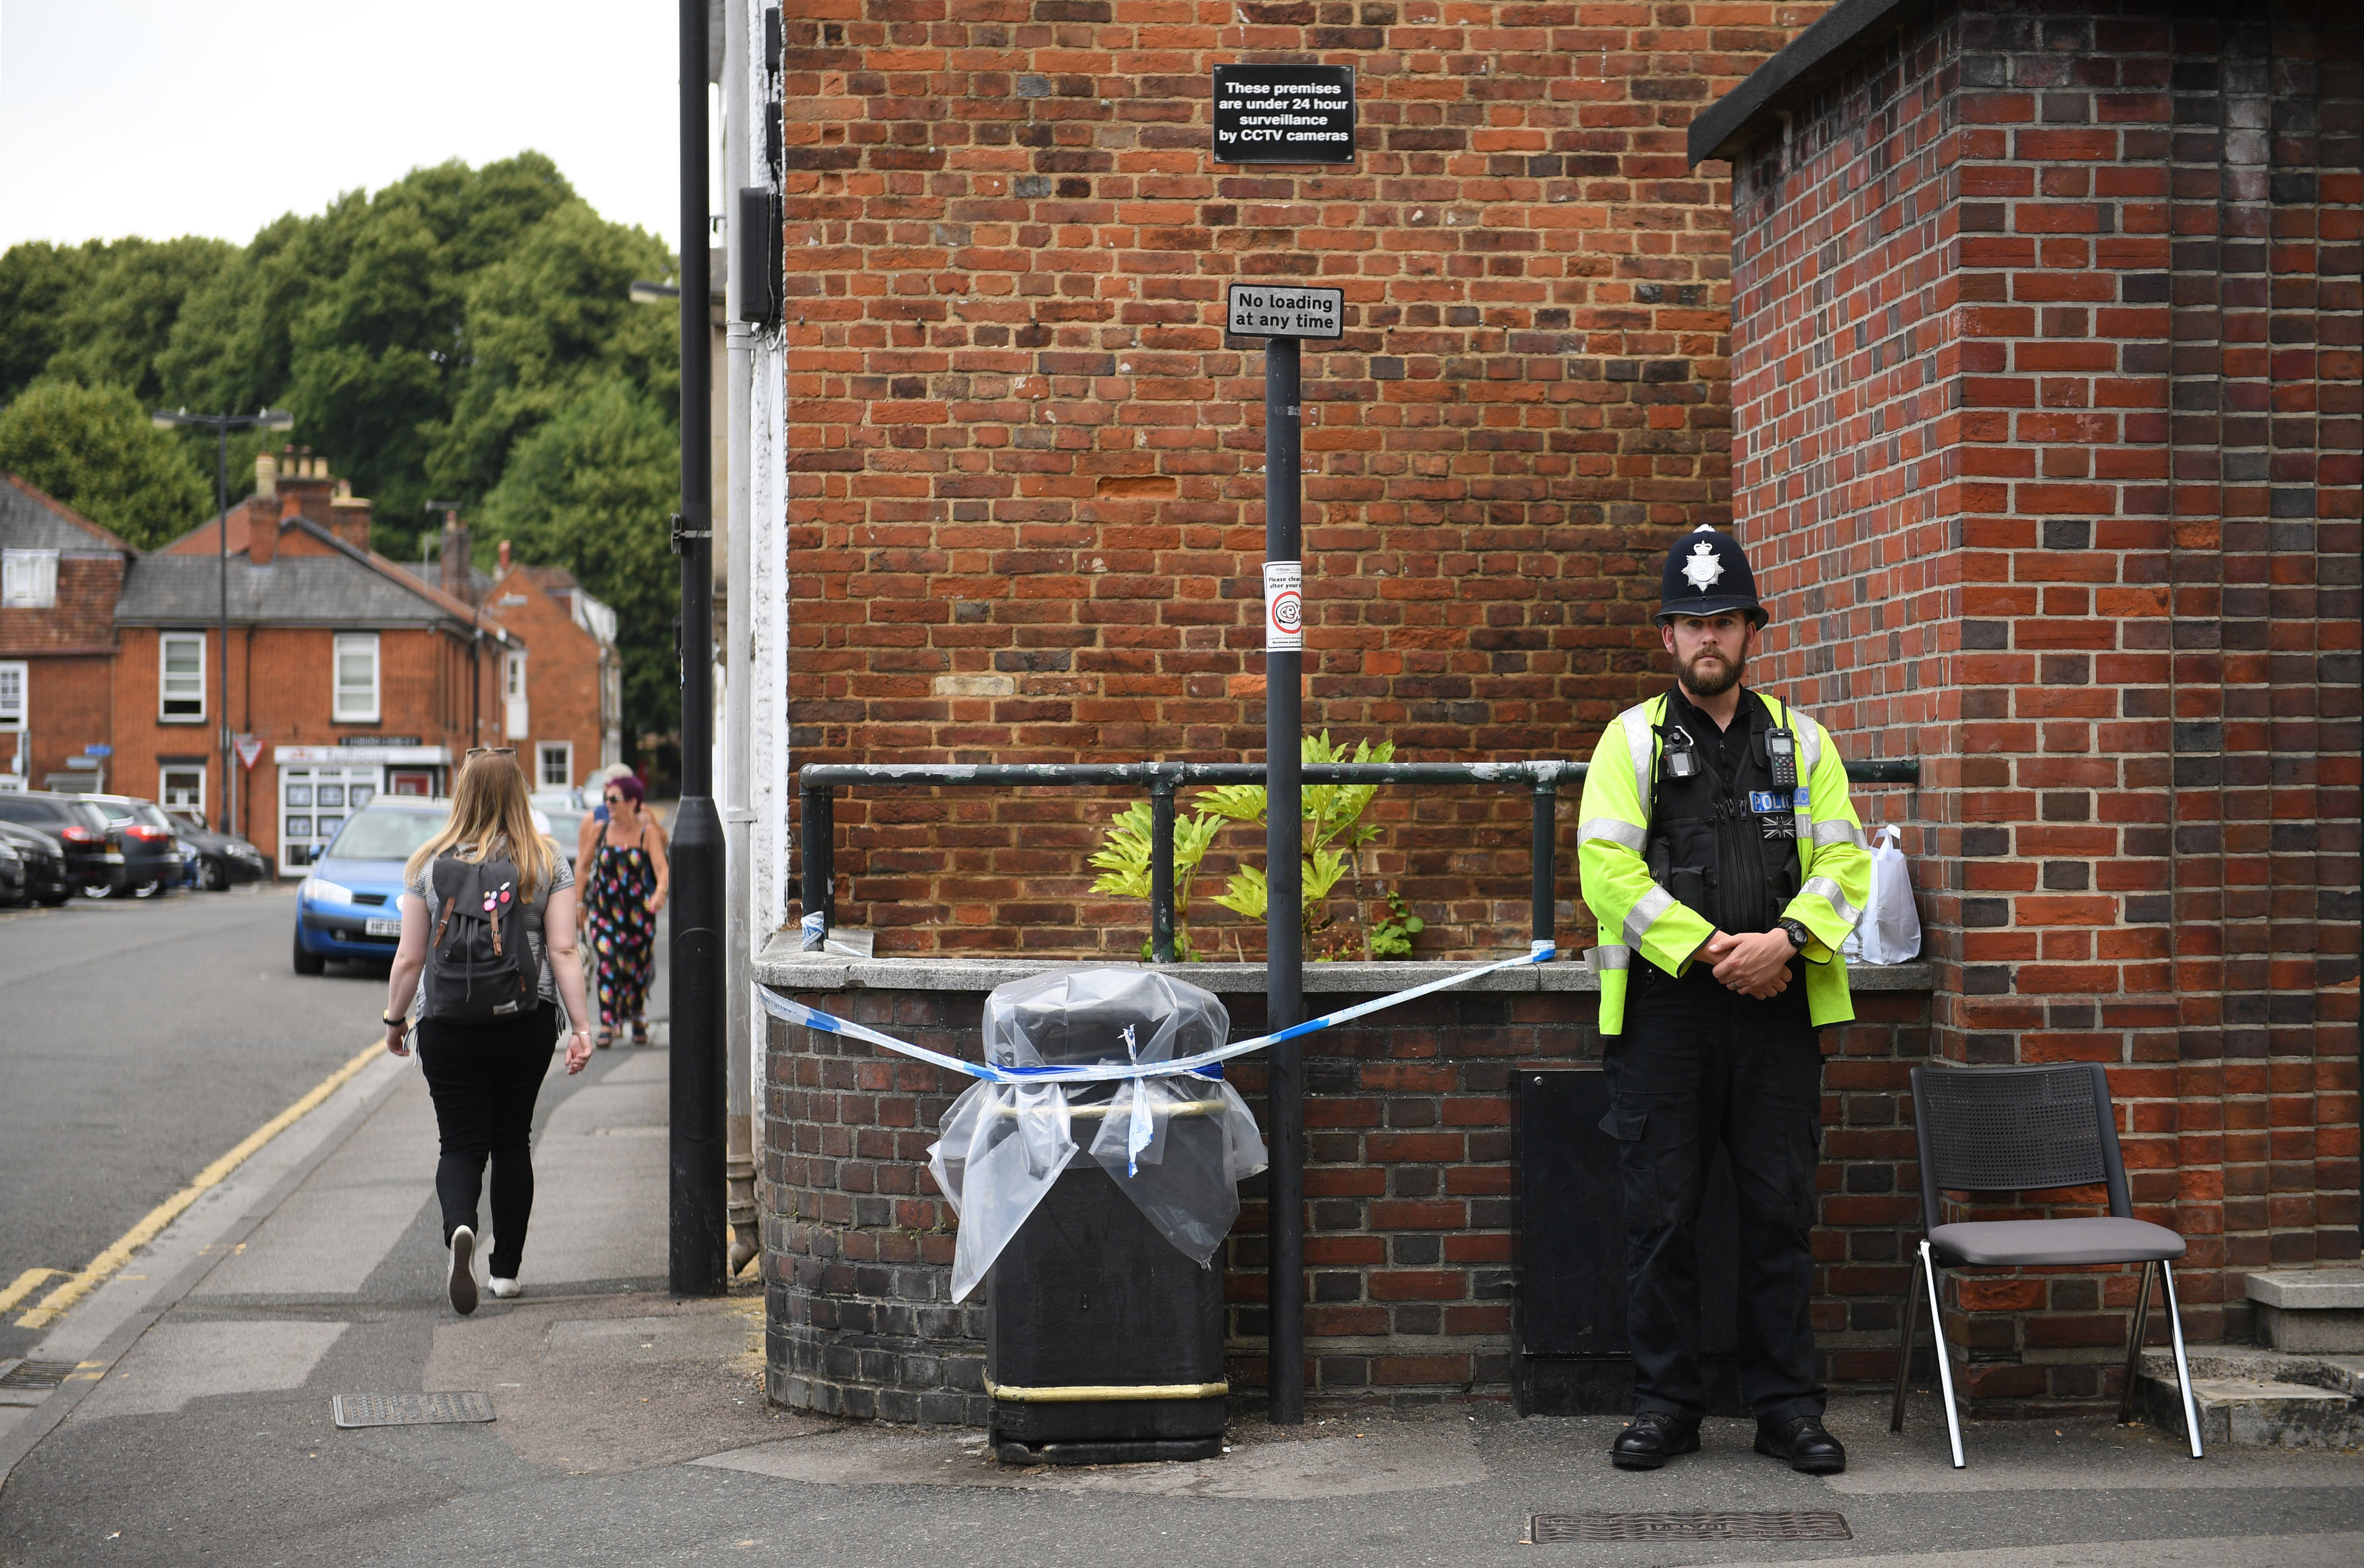 Woman dies after being exposed to Novichok